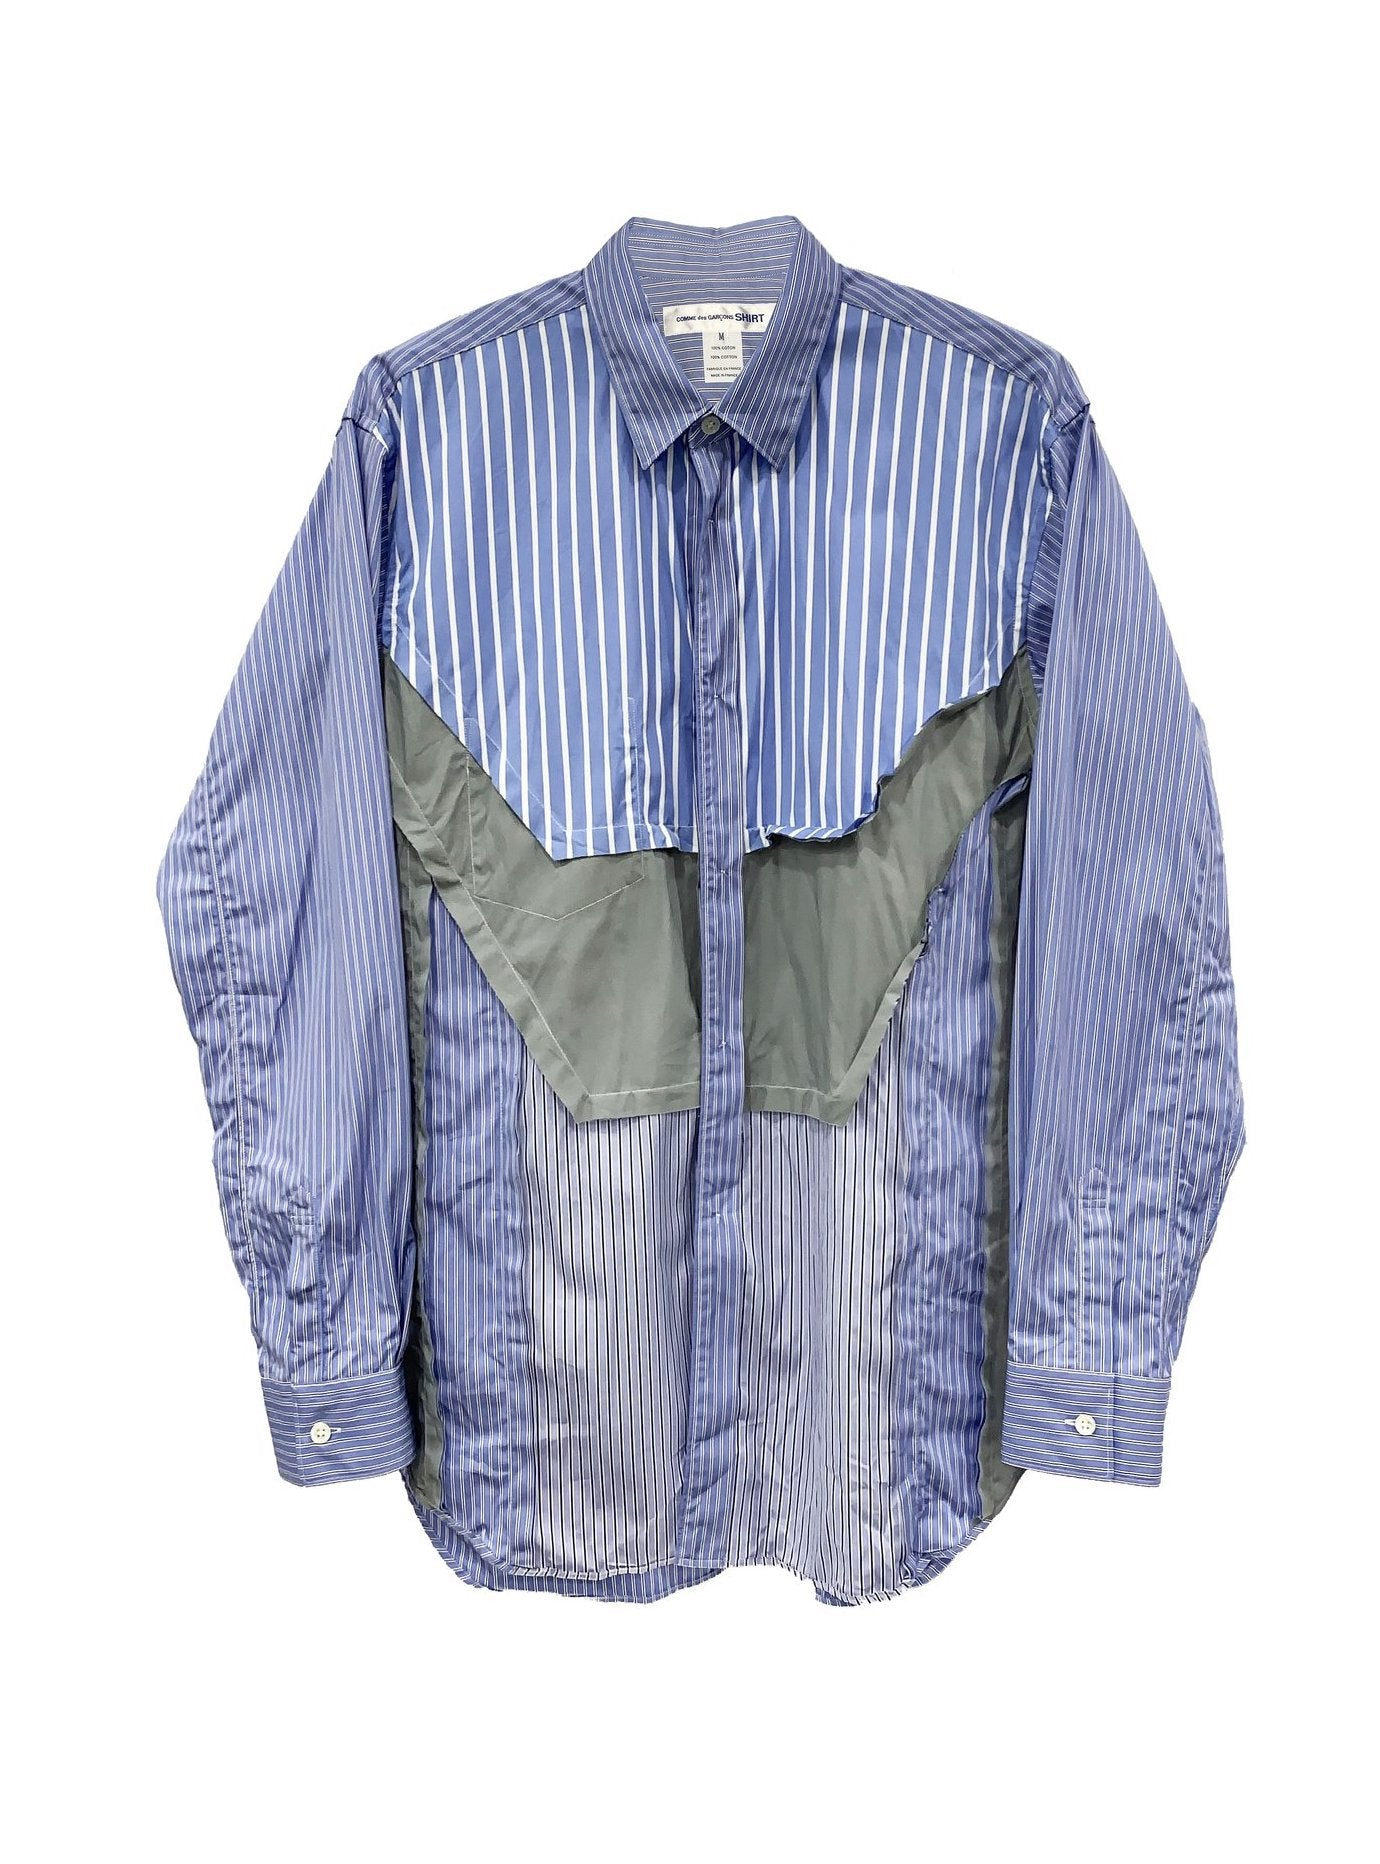 Patchwork Stripe Shirt (Blue and Grey) TOP COMME DES GARÇONS SHIRT - NOLM - Clothes Online - nolmau.com - Sydney-Australia Online Shopping